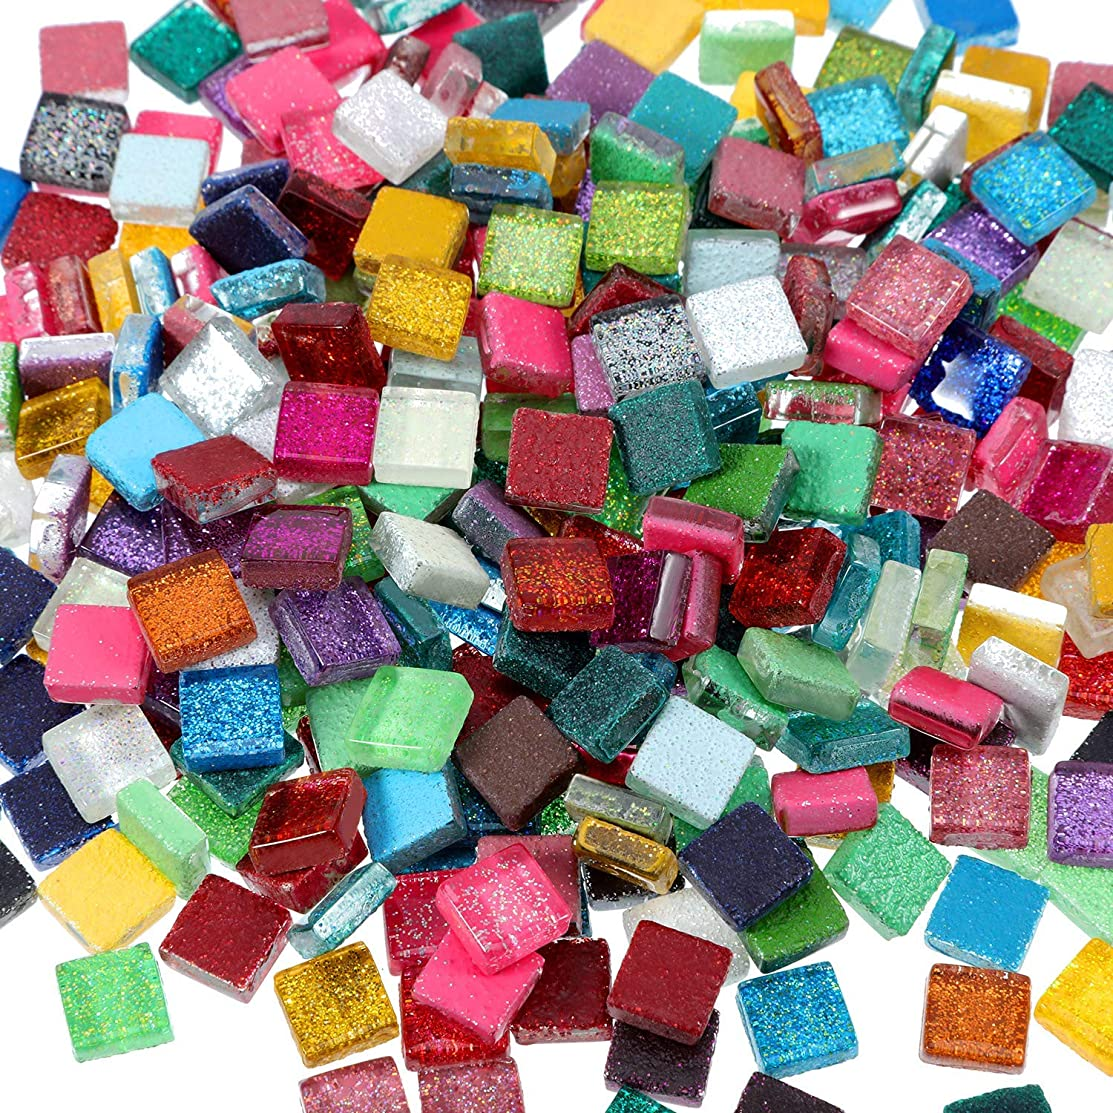 Yoogeer 200Pcs 1 by 1 cm DIY Glitter Crystal Mosaic for Home Decoration Crafts Supply